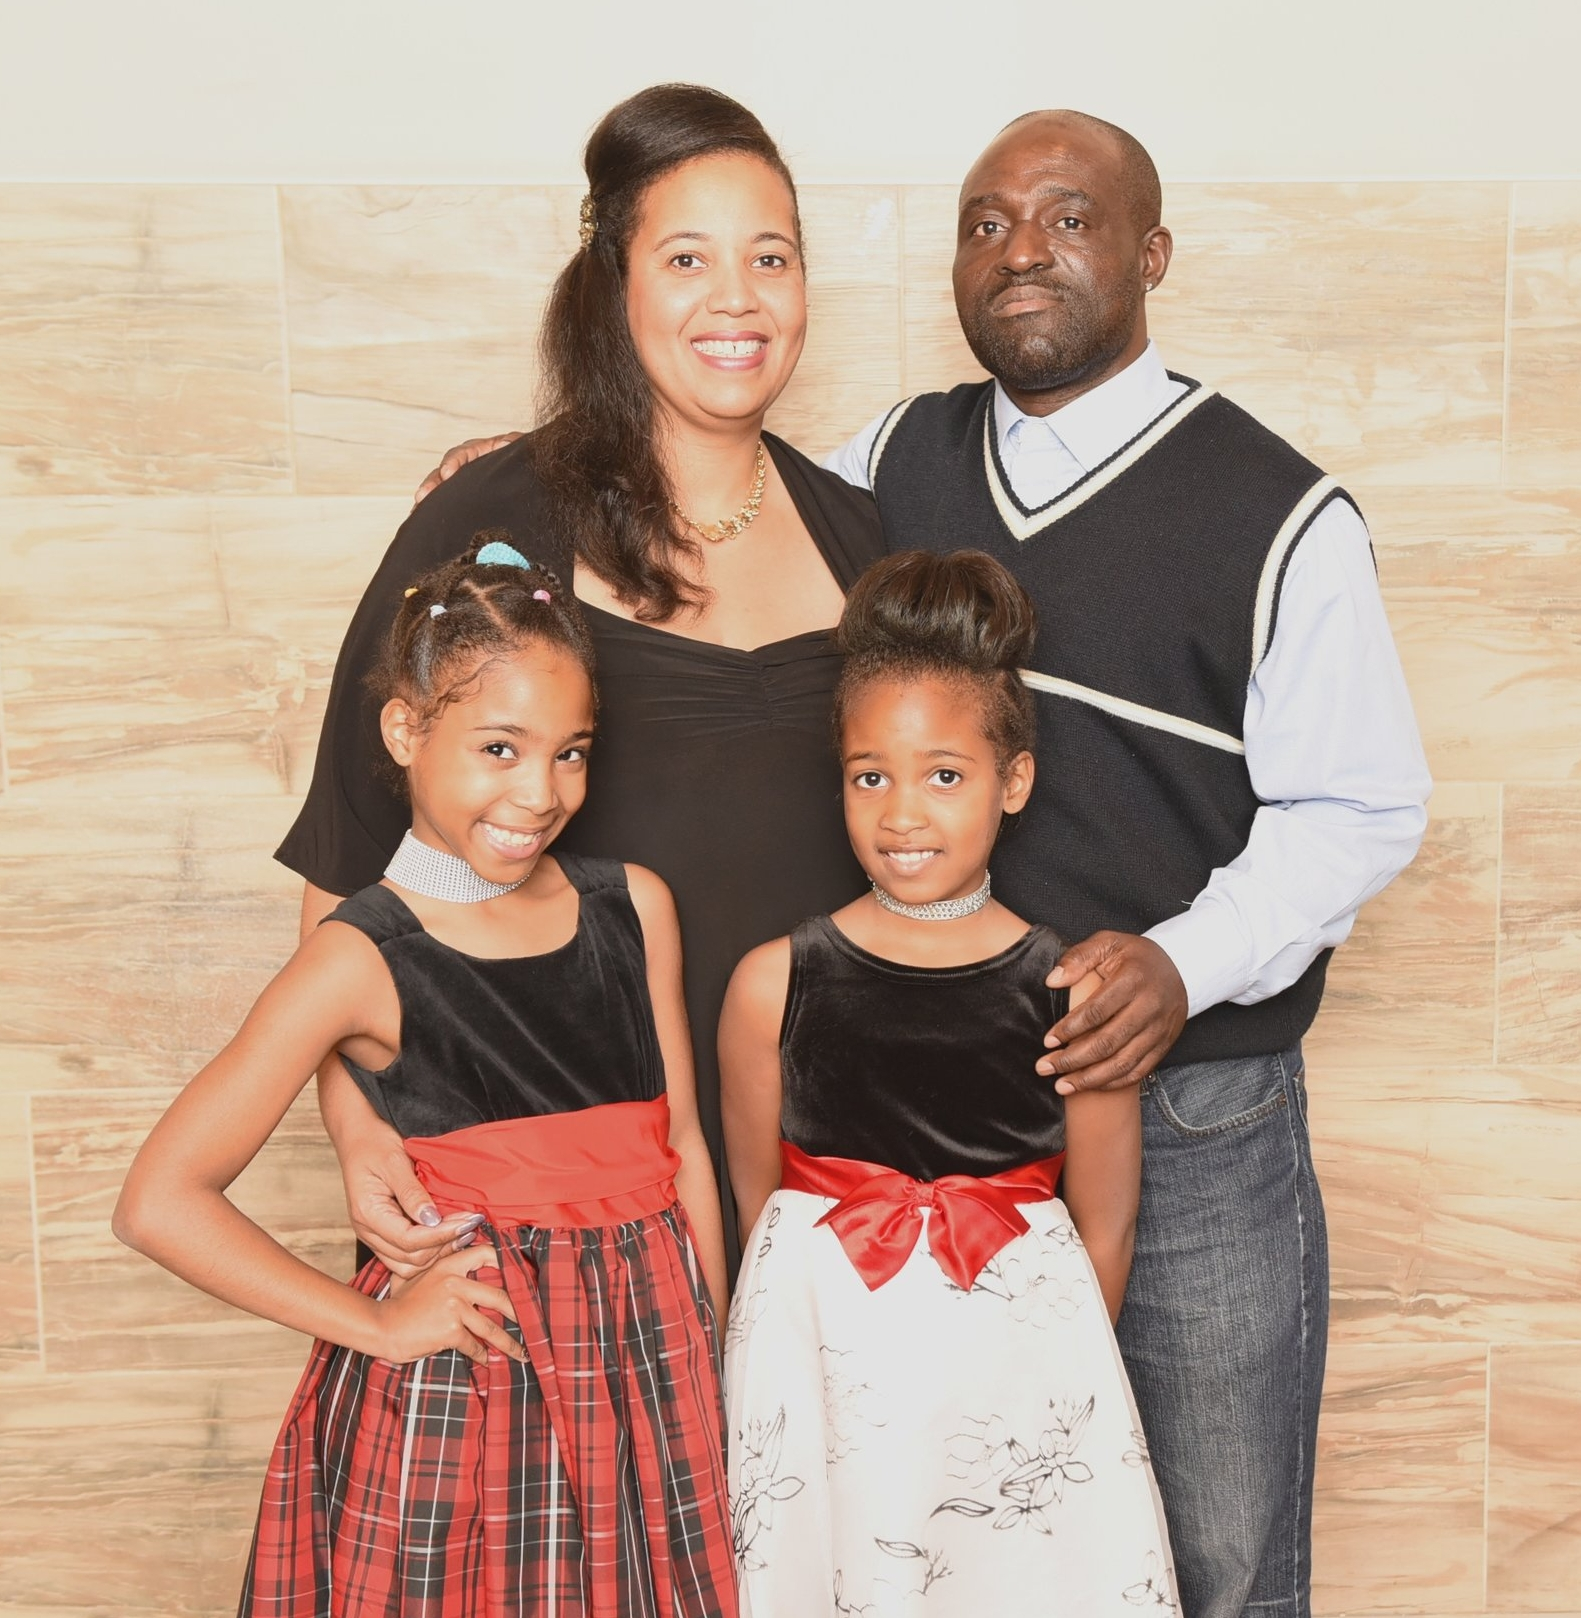 George Ofori and Johanne Konan with their kids Elisa and Ines